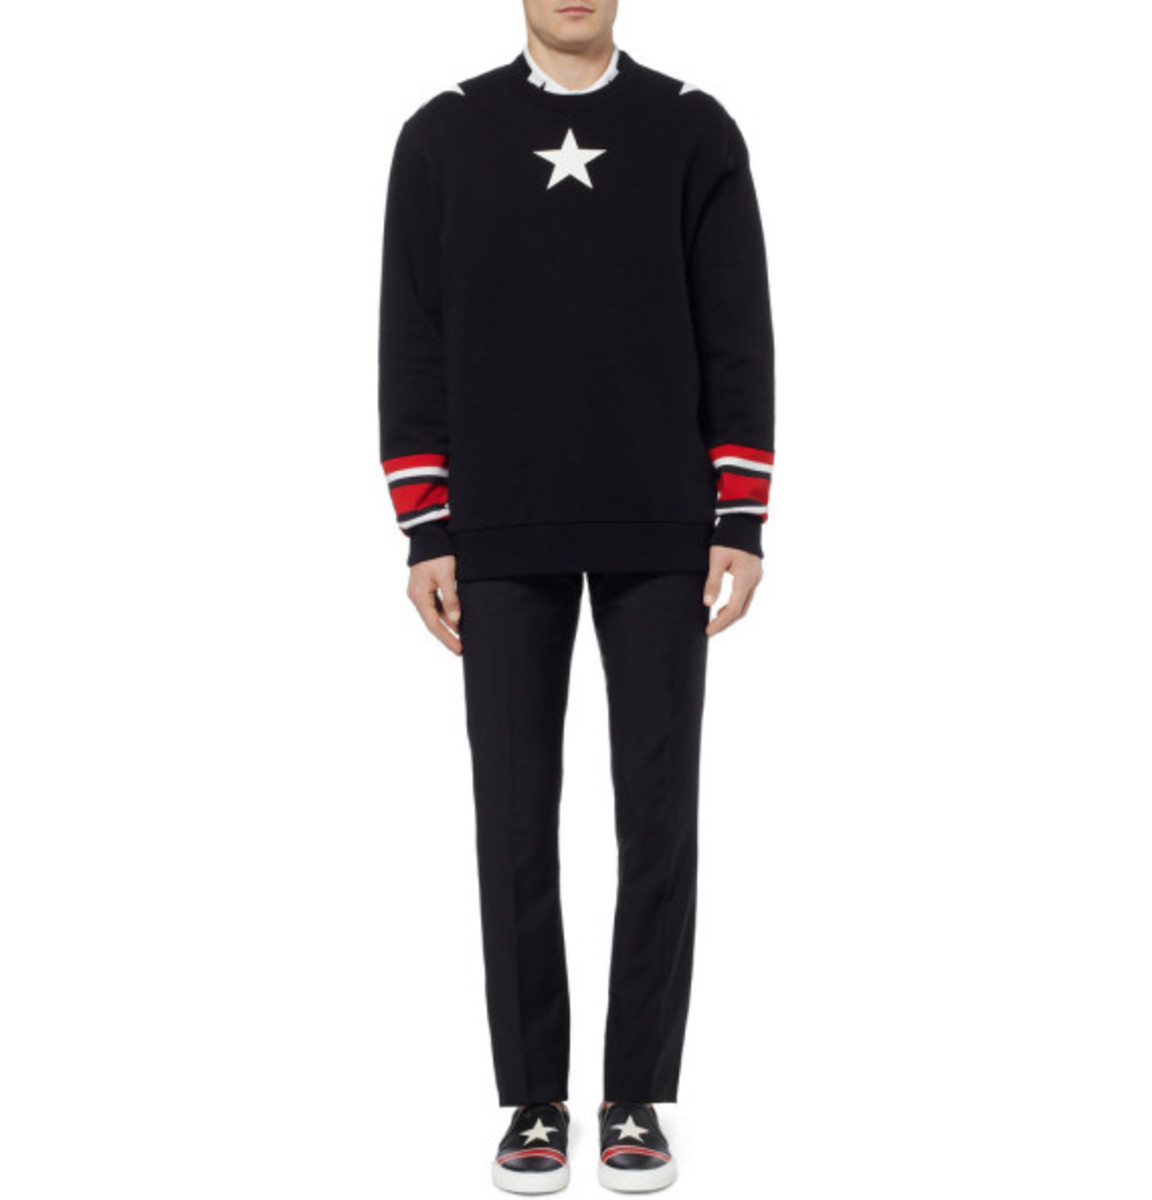 givenchy-star-print-leather-sneaker-04